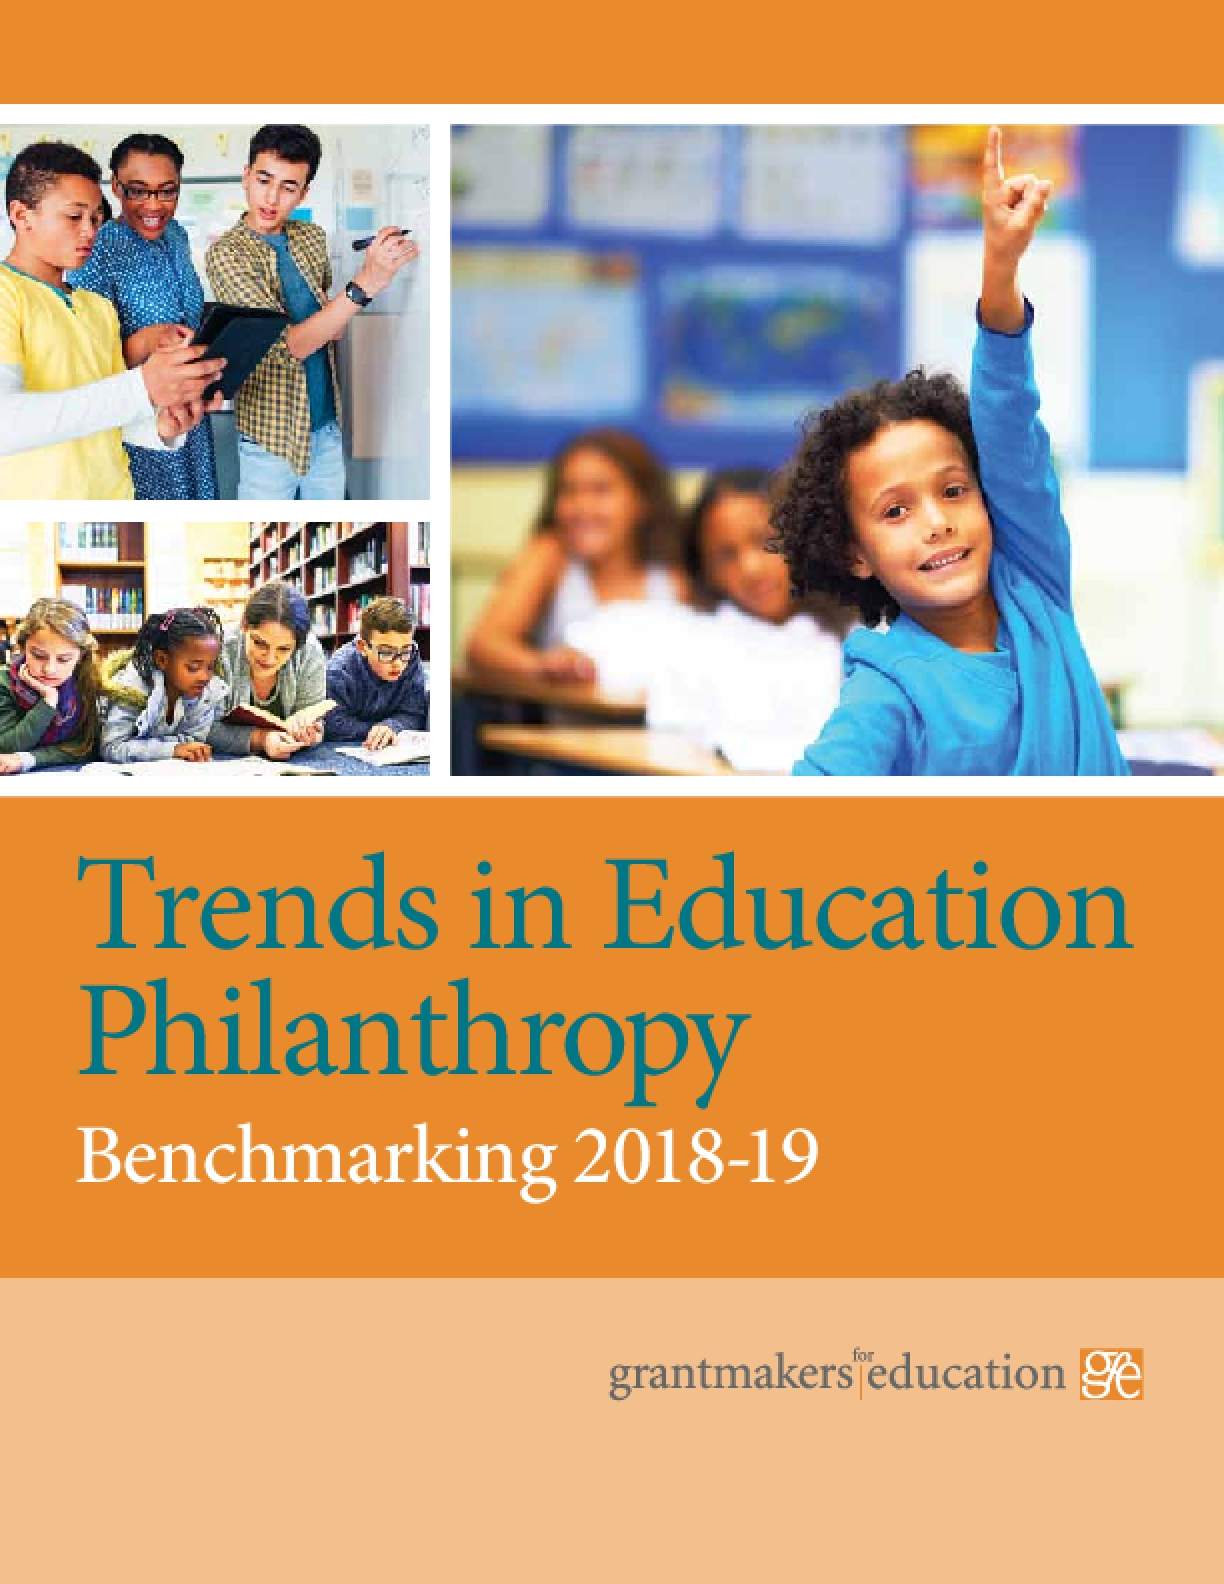 Trends in Education Philanthropy: Benchmarking 2018-19